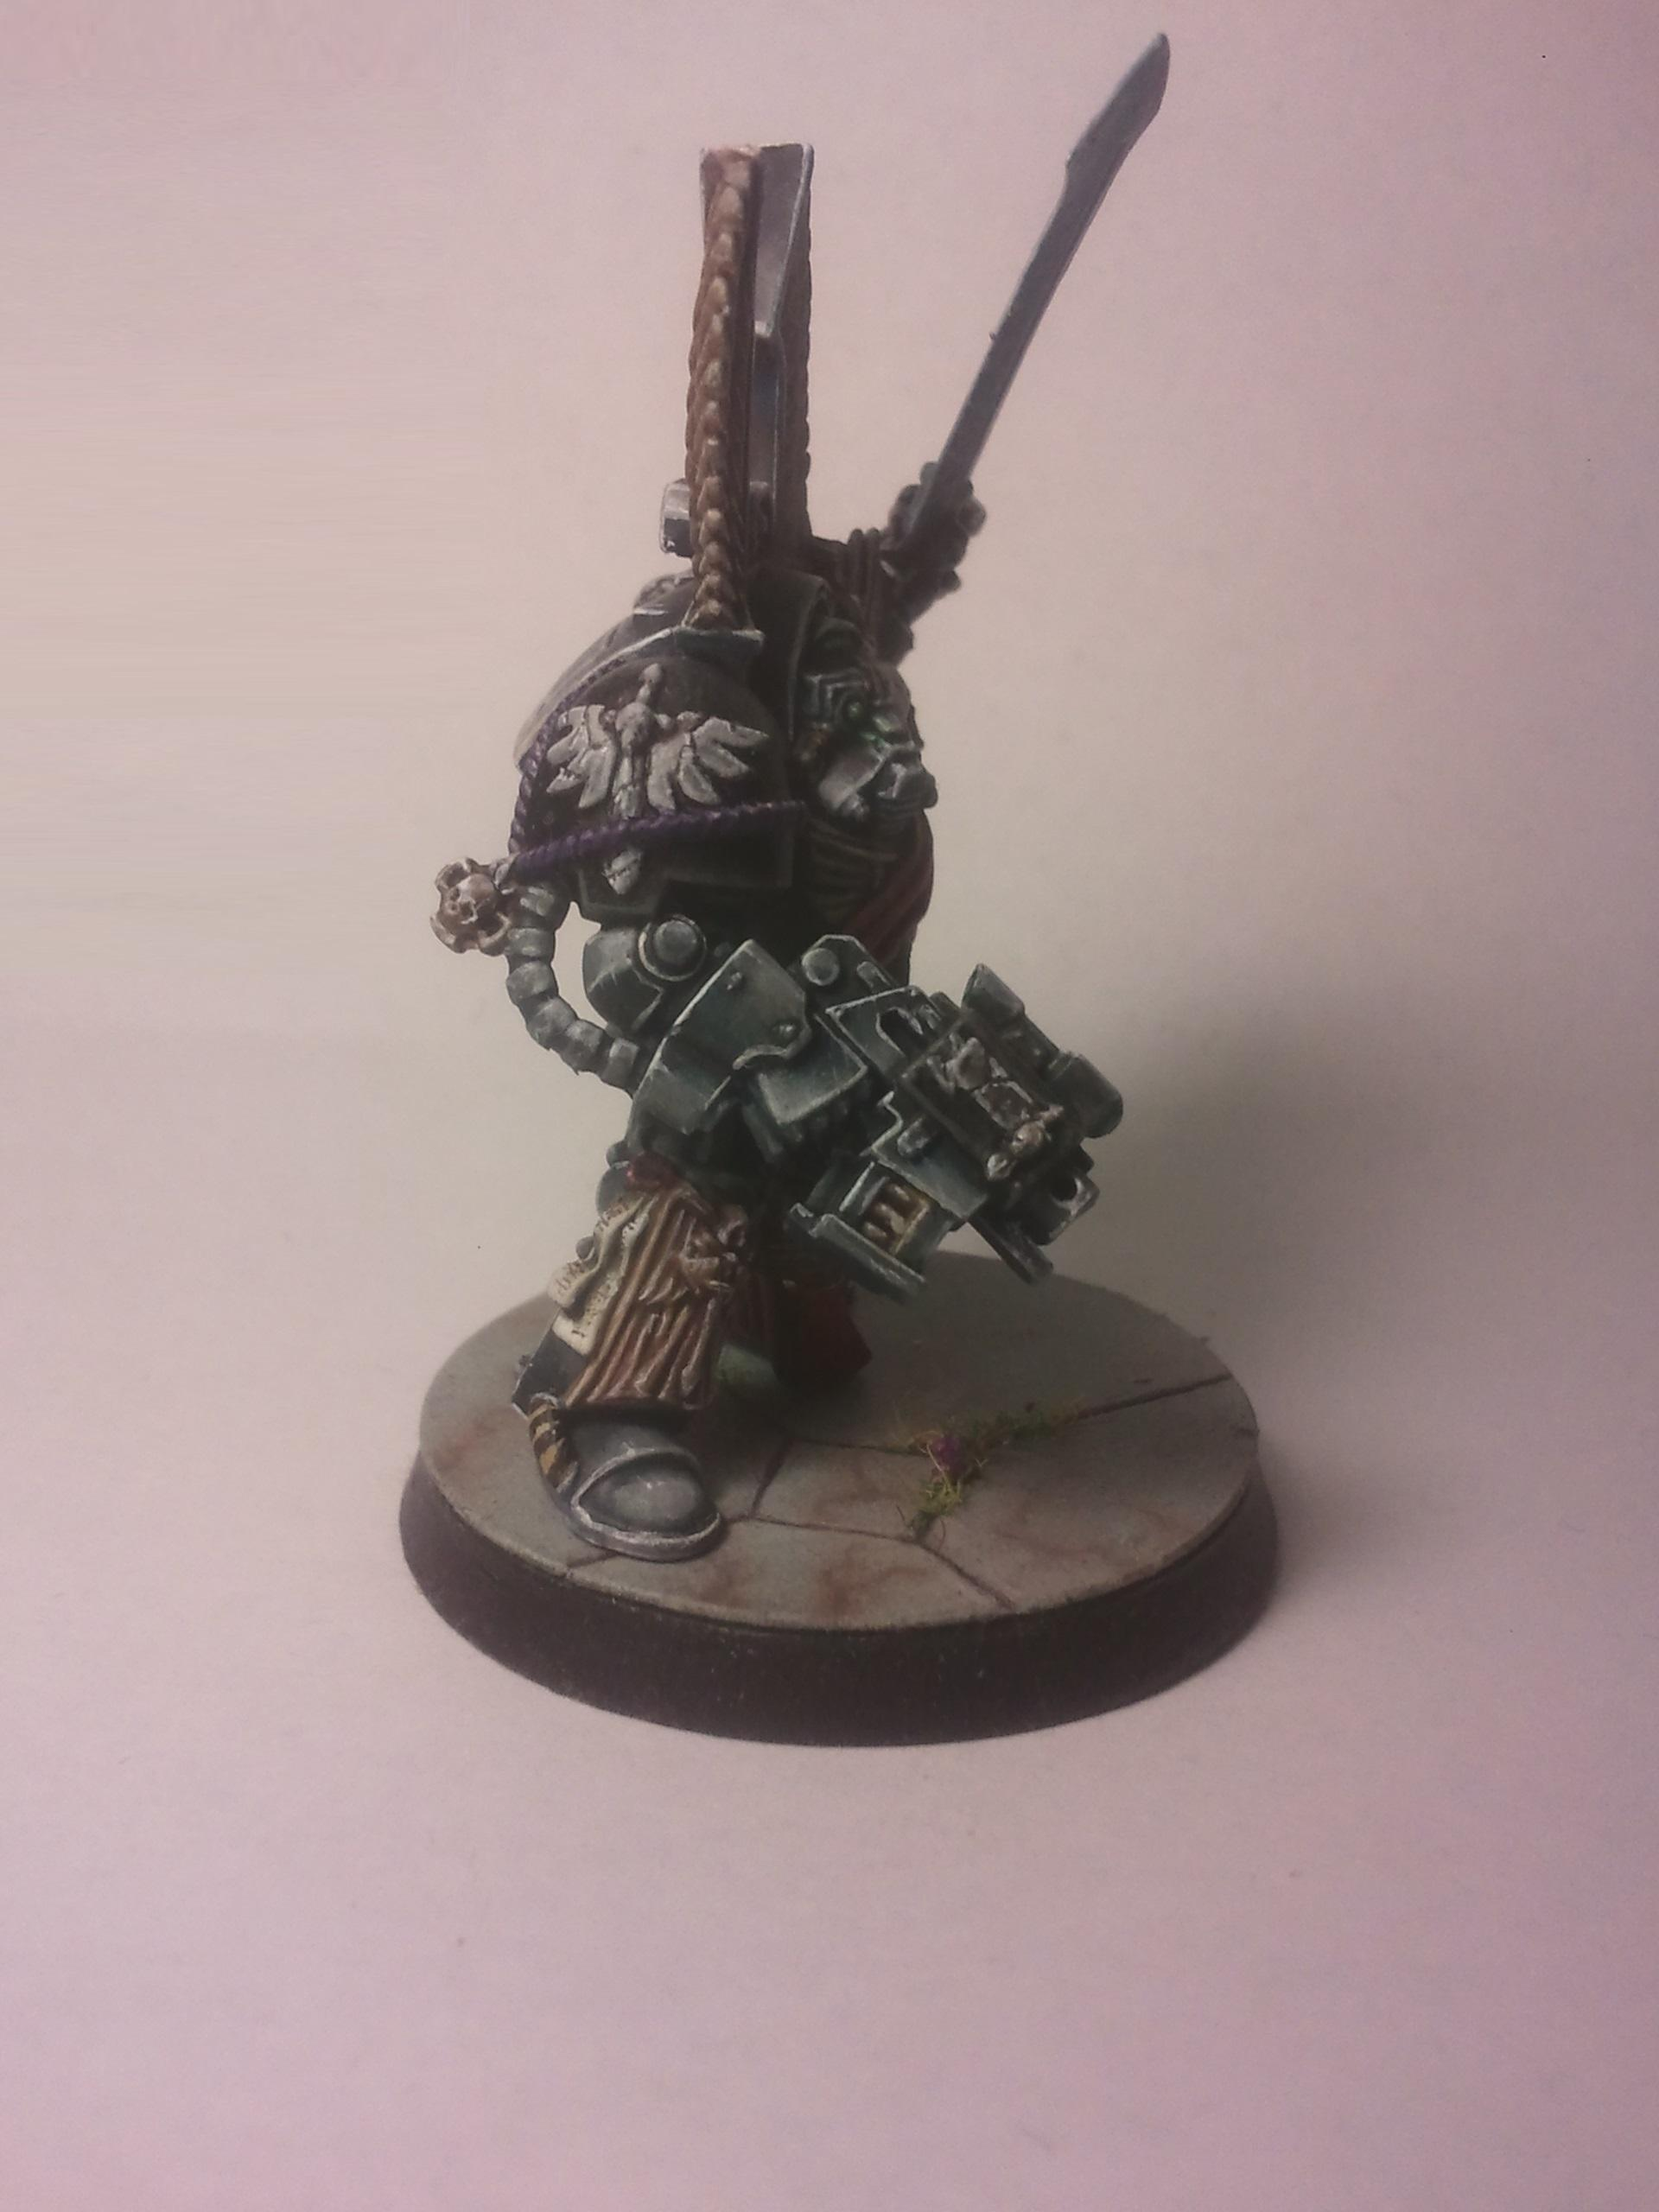 Dark Angels, Dark Vengeance, Guardians Of The Covenant, Marble, Non-Metallic Metal, Object Source Lighting, Sergeant, Successor Chapter, Terminator Armor